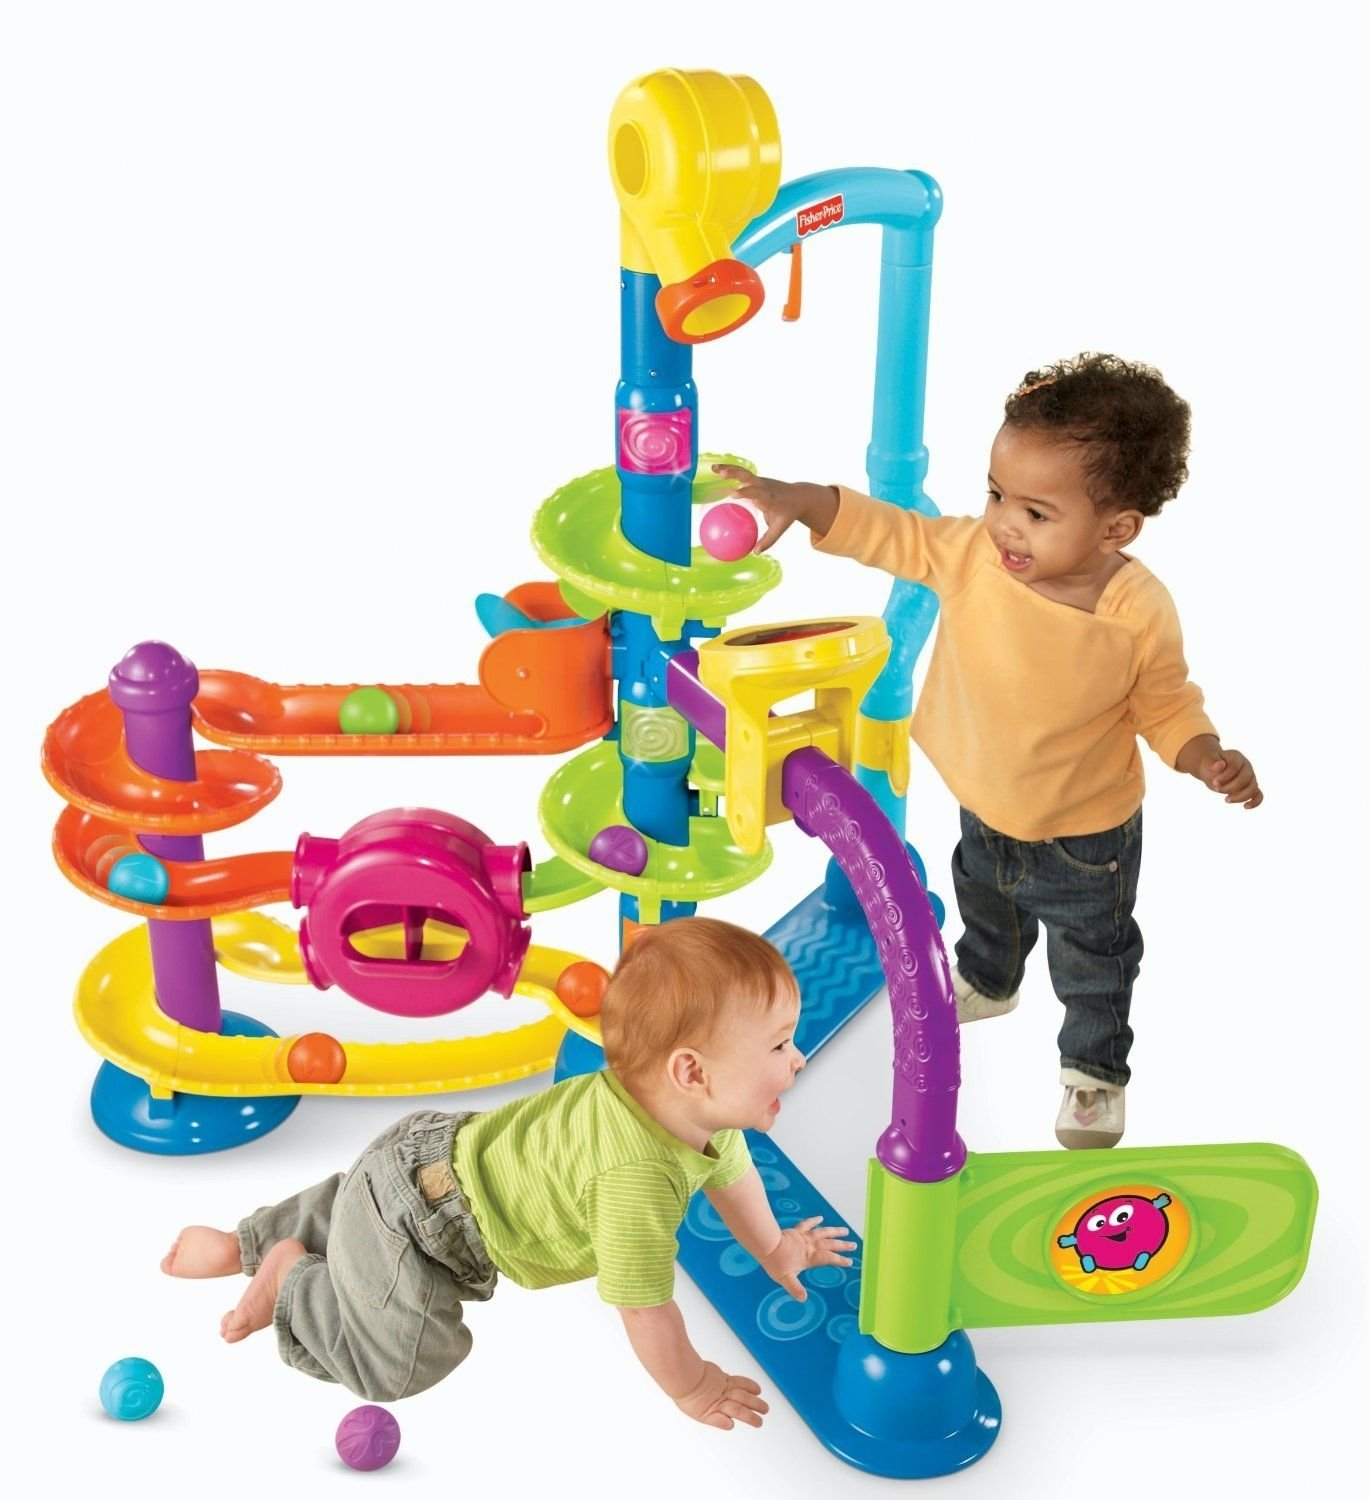 10 Lovely Gift Ideas For 1 Year Old Baby Girl amazon fisher price cruise and groove ballapalooza toys 3 2020